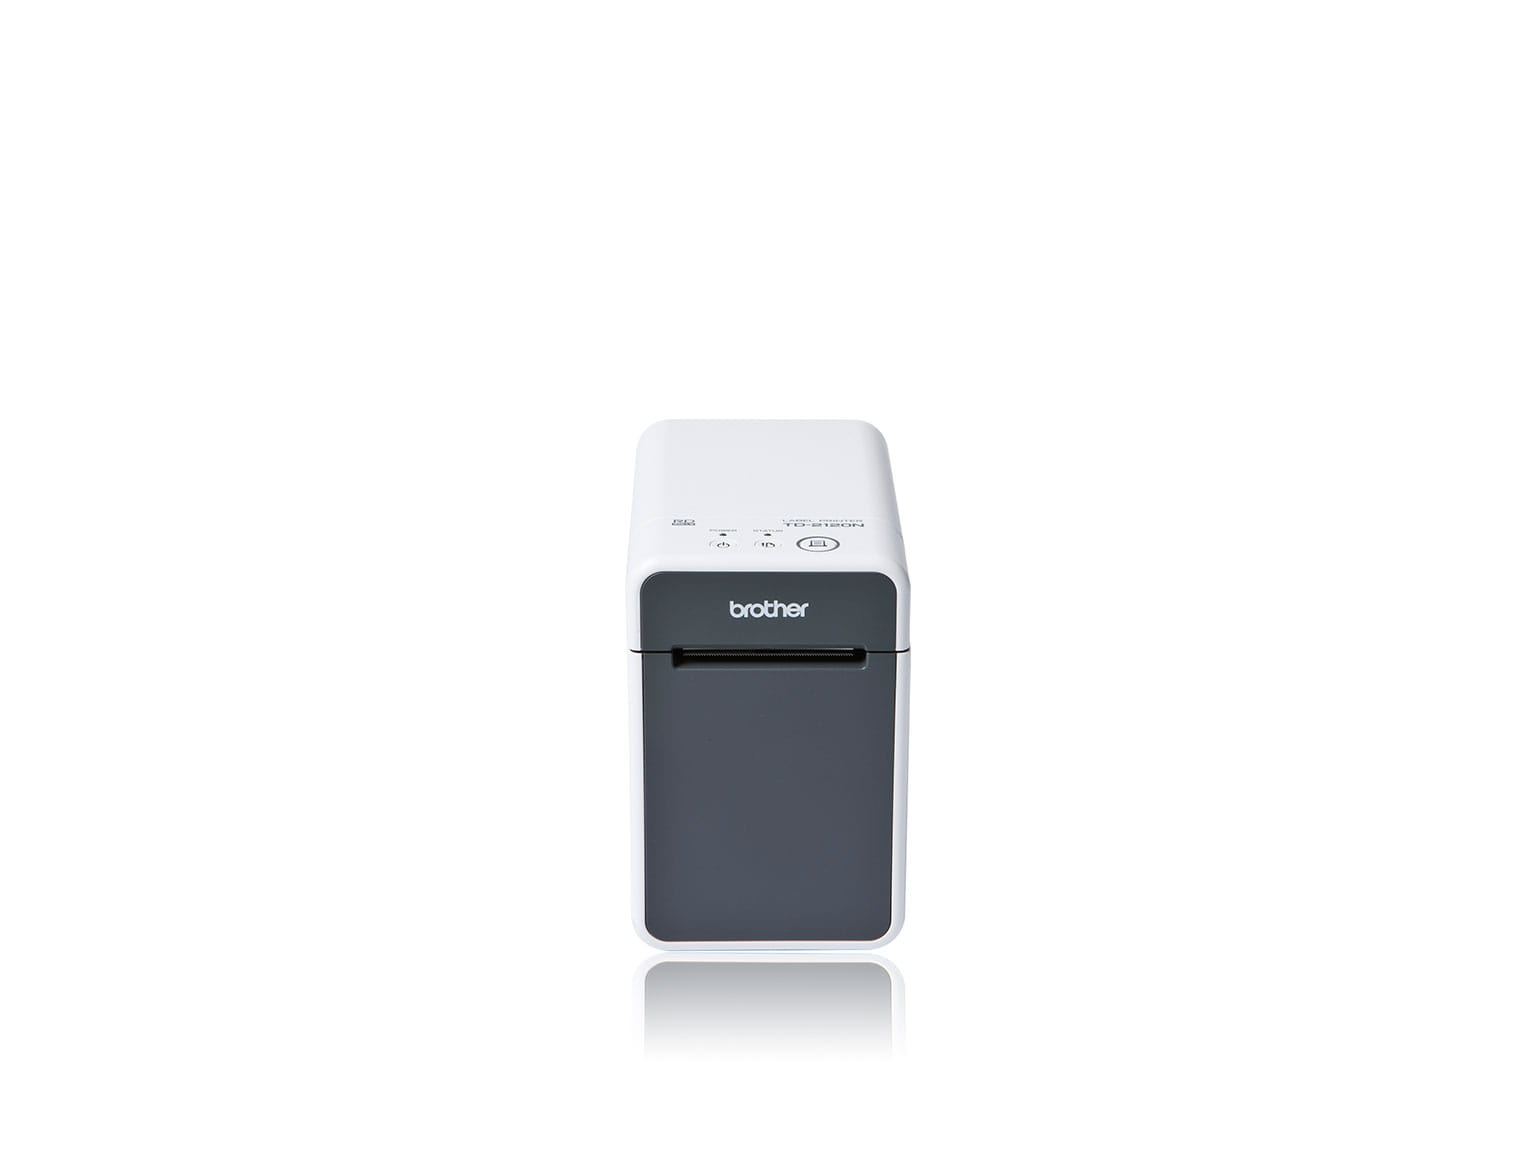 Brother portable printer TD-2120